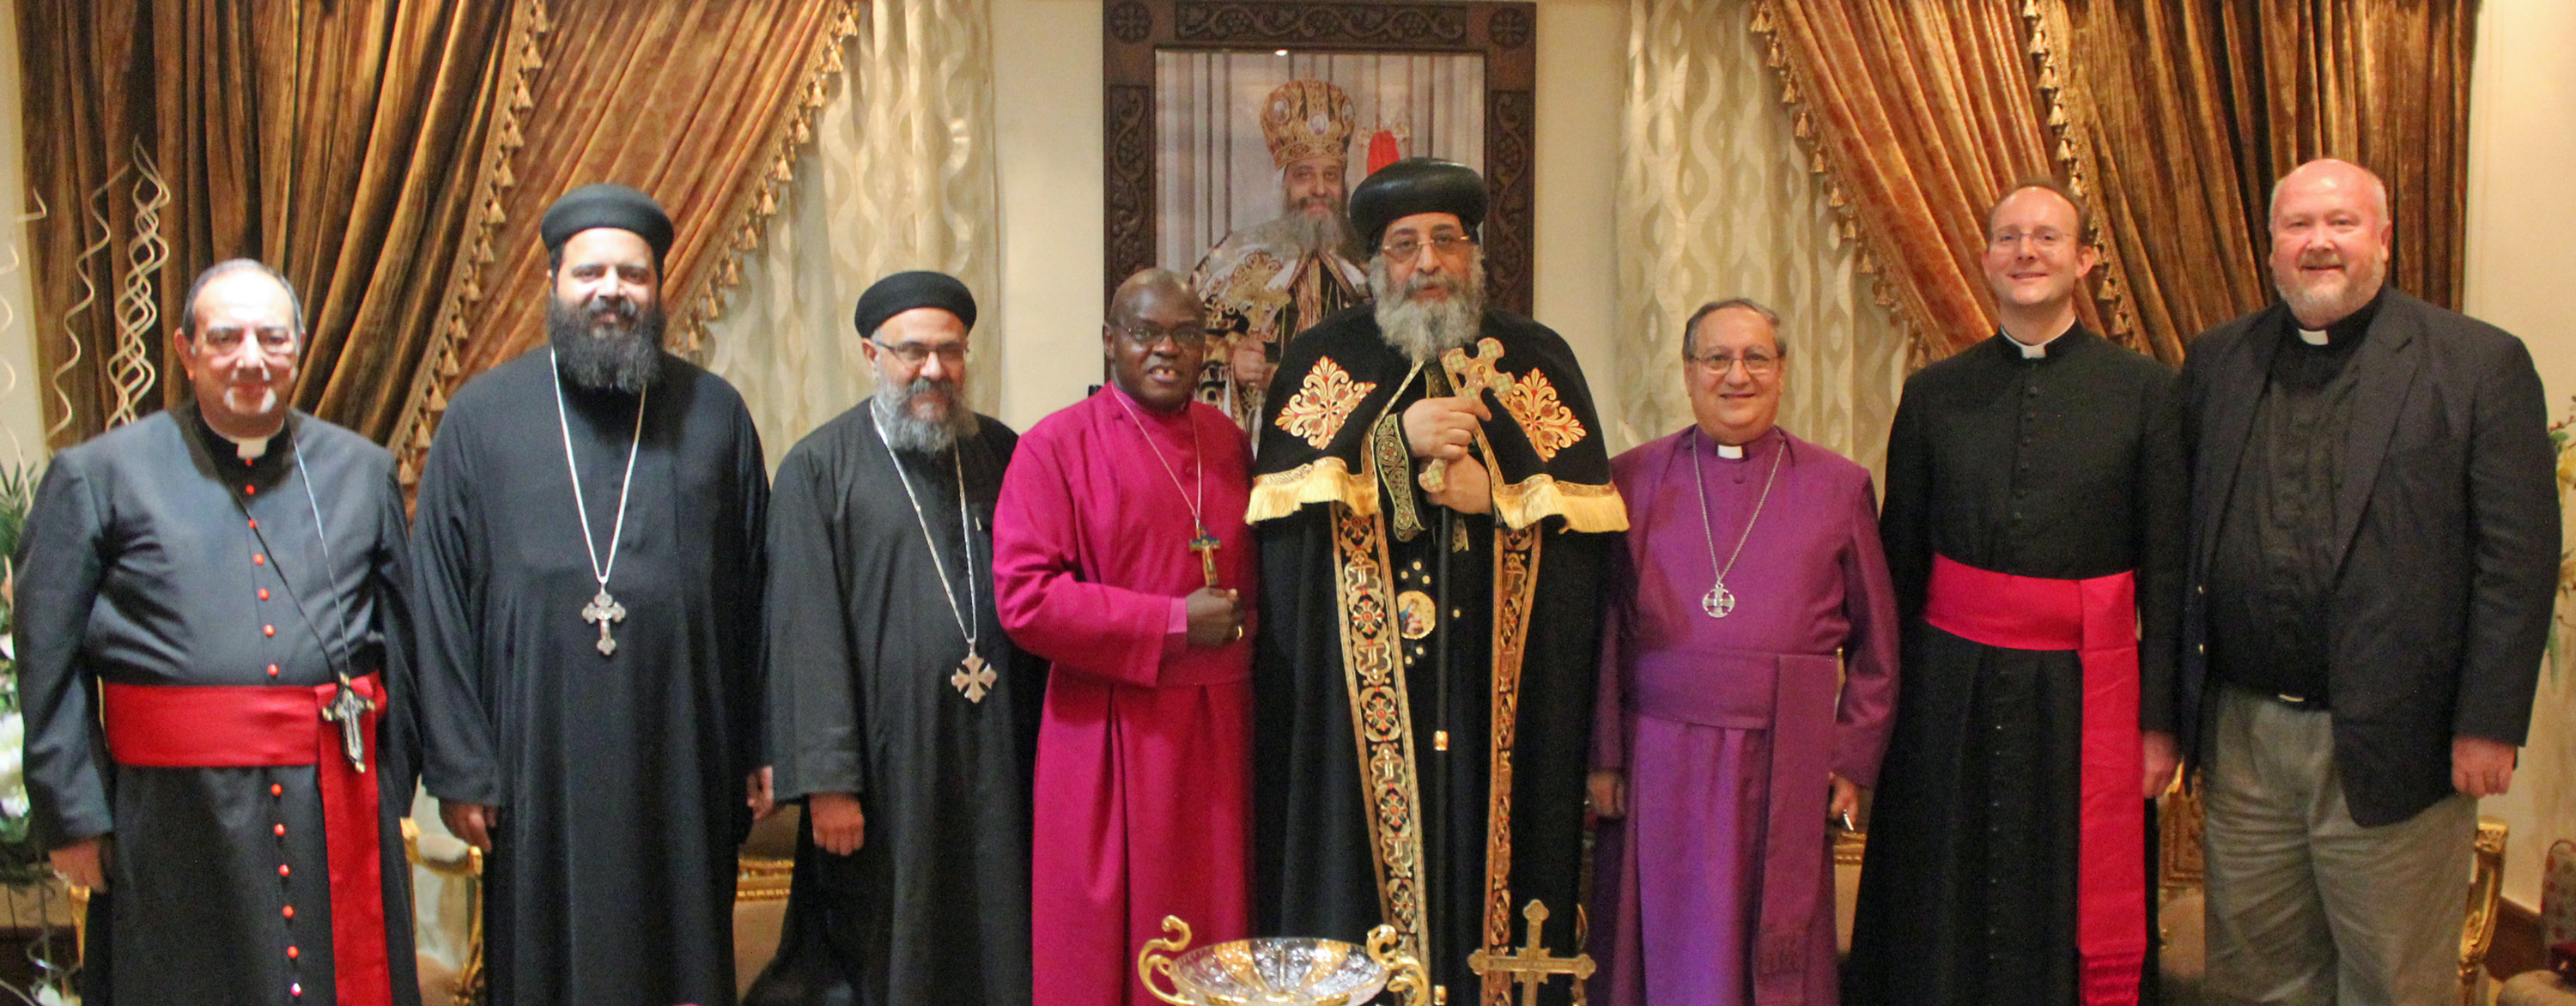 Archbishop with Pope Tawadros II